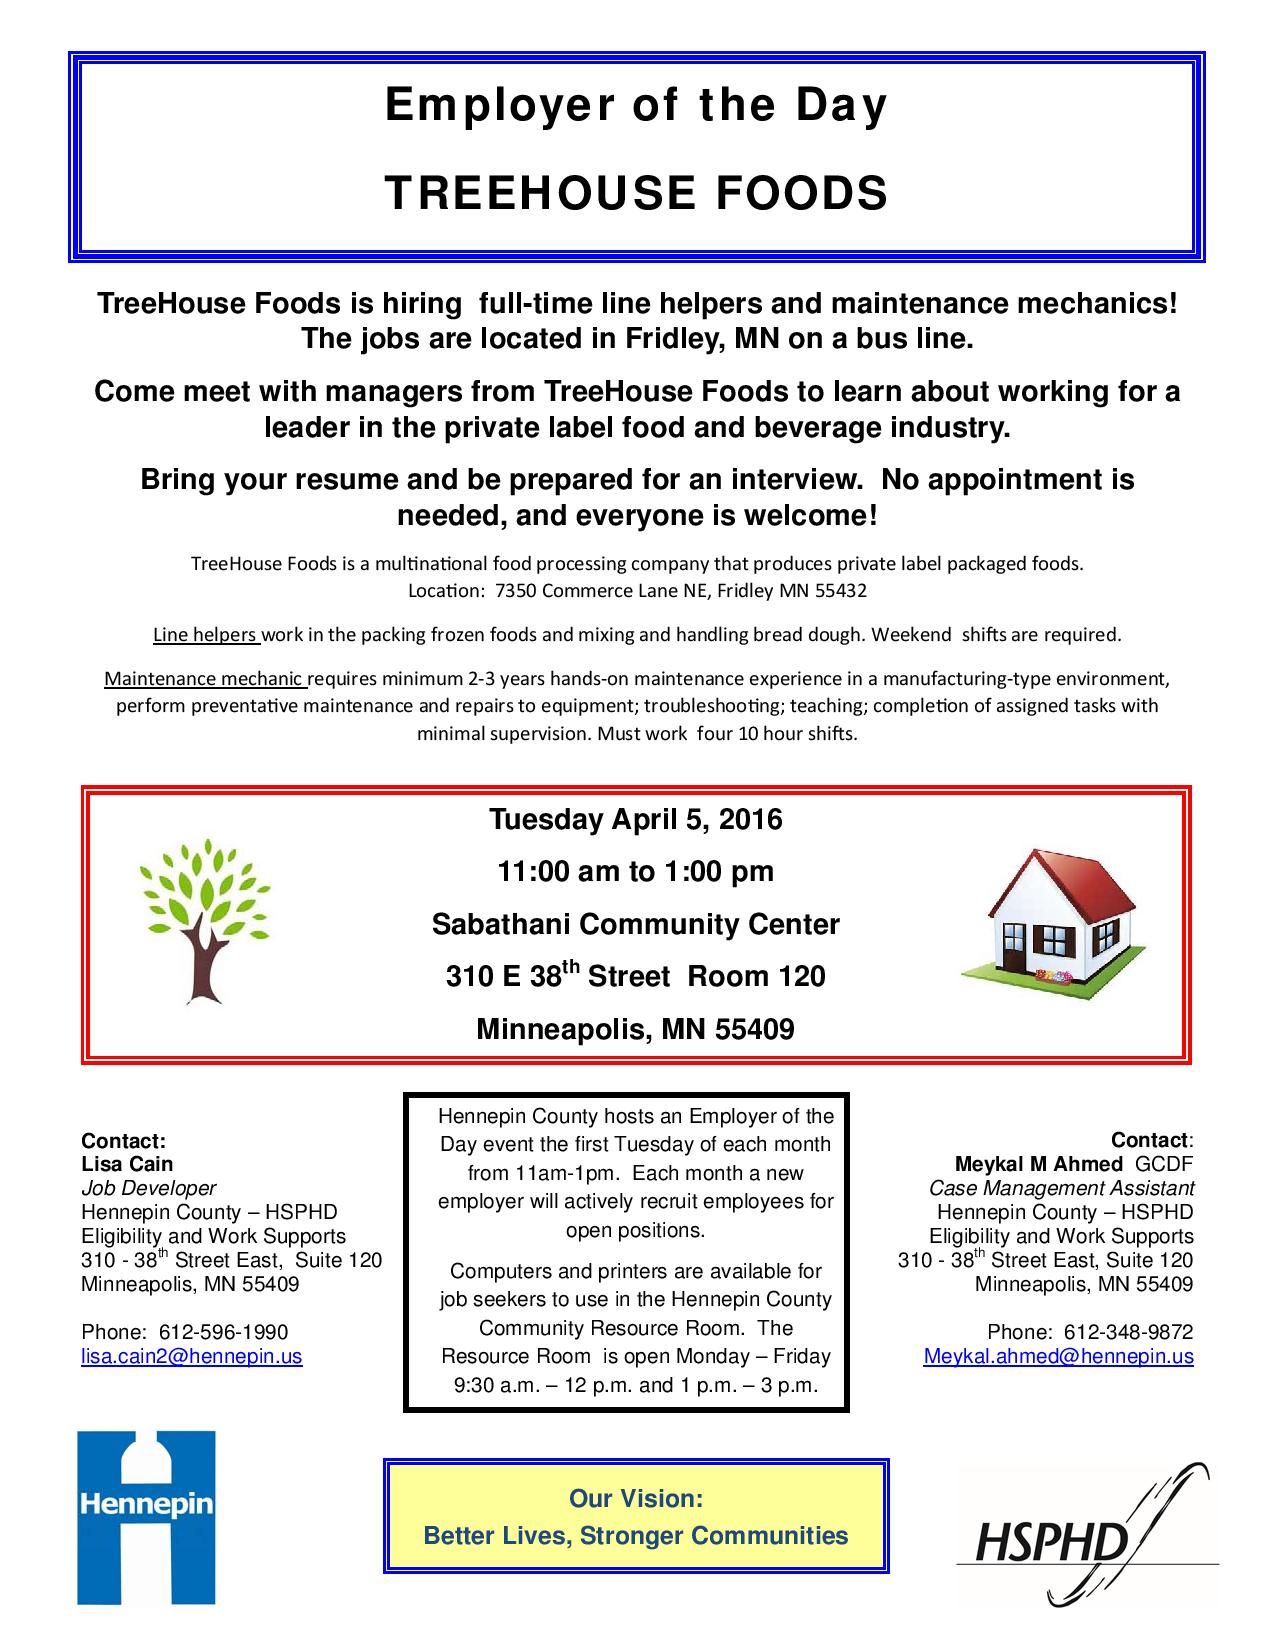 treehouse_foods_employer_of_the_day_april_5_2016-page-001.jpg